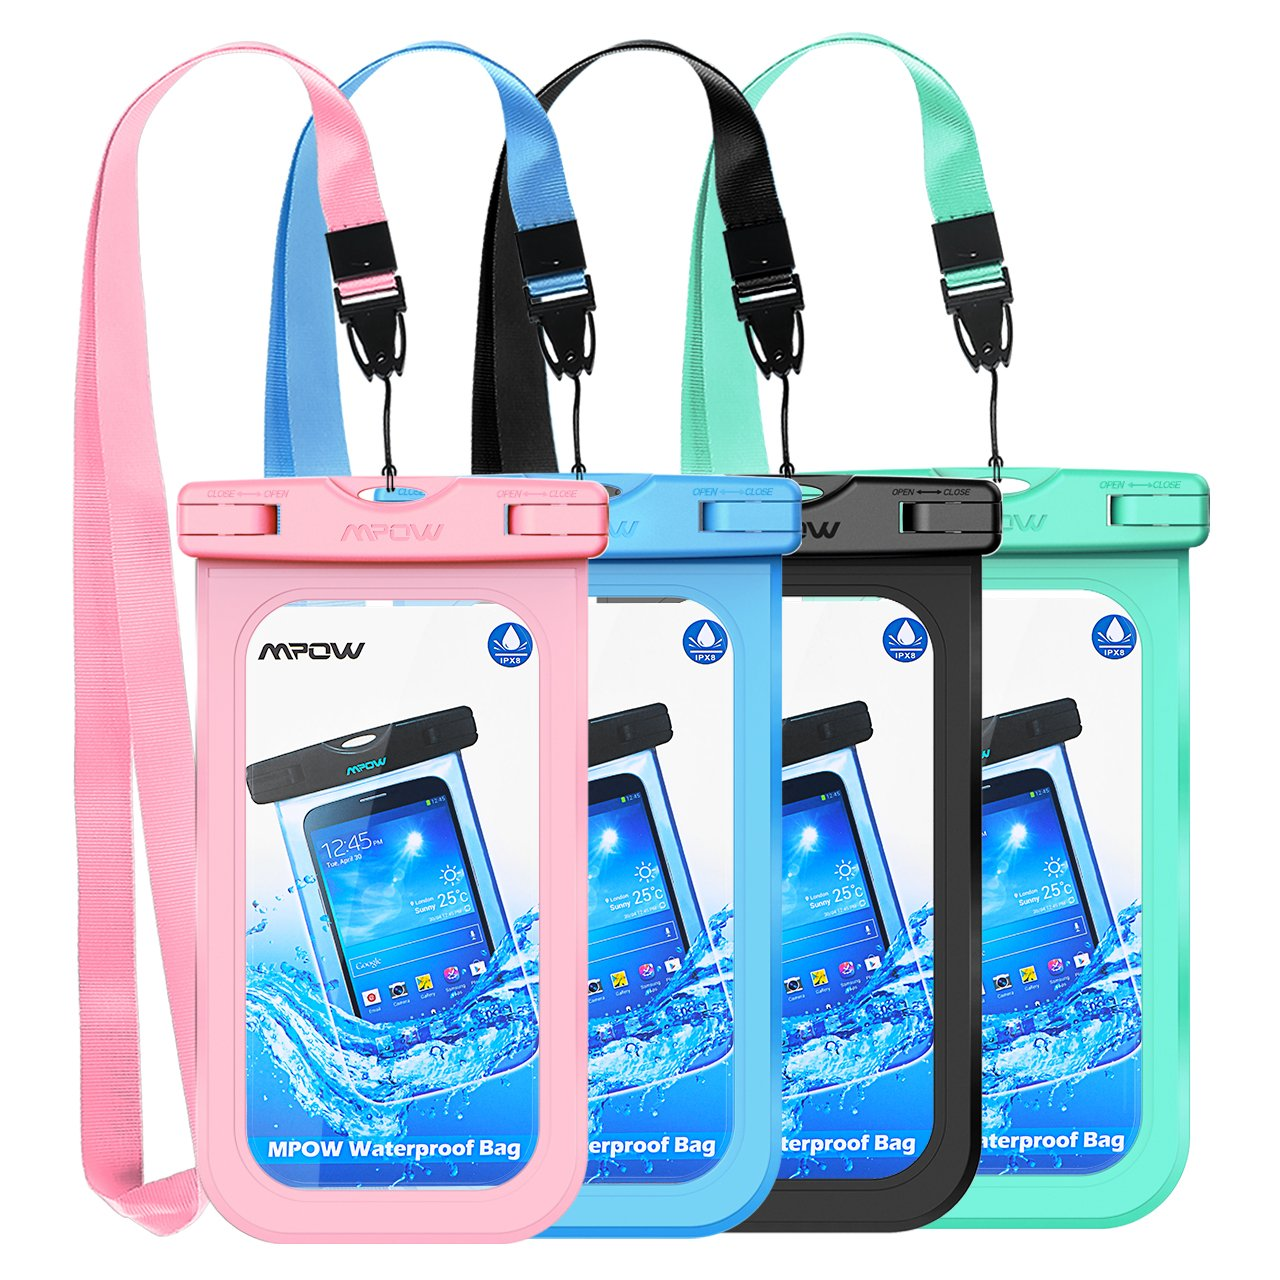 Mpow Waterproof Case, Universal IPX8 Waterproof Phone Pouch Underwater Phone Case Bag for iPhone X/8/8P/7/7P, Samsung Galaxy S9/S9P/S8/Note 8, Google Pixel/HTC up to 6.0'' (Pink Blue Black Green)